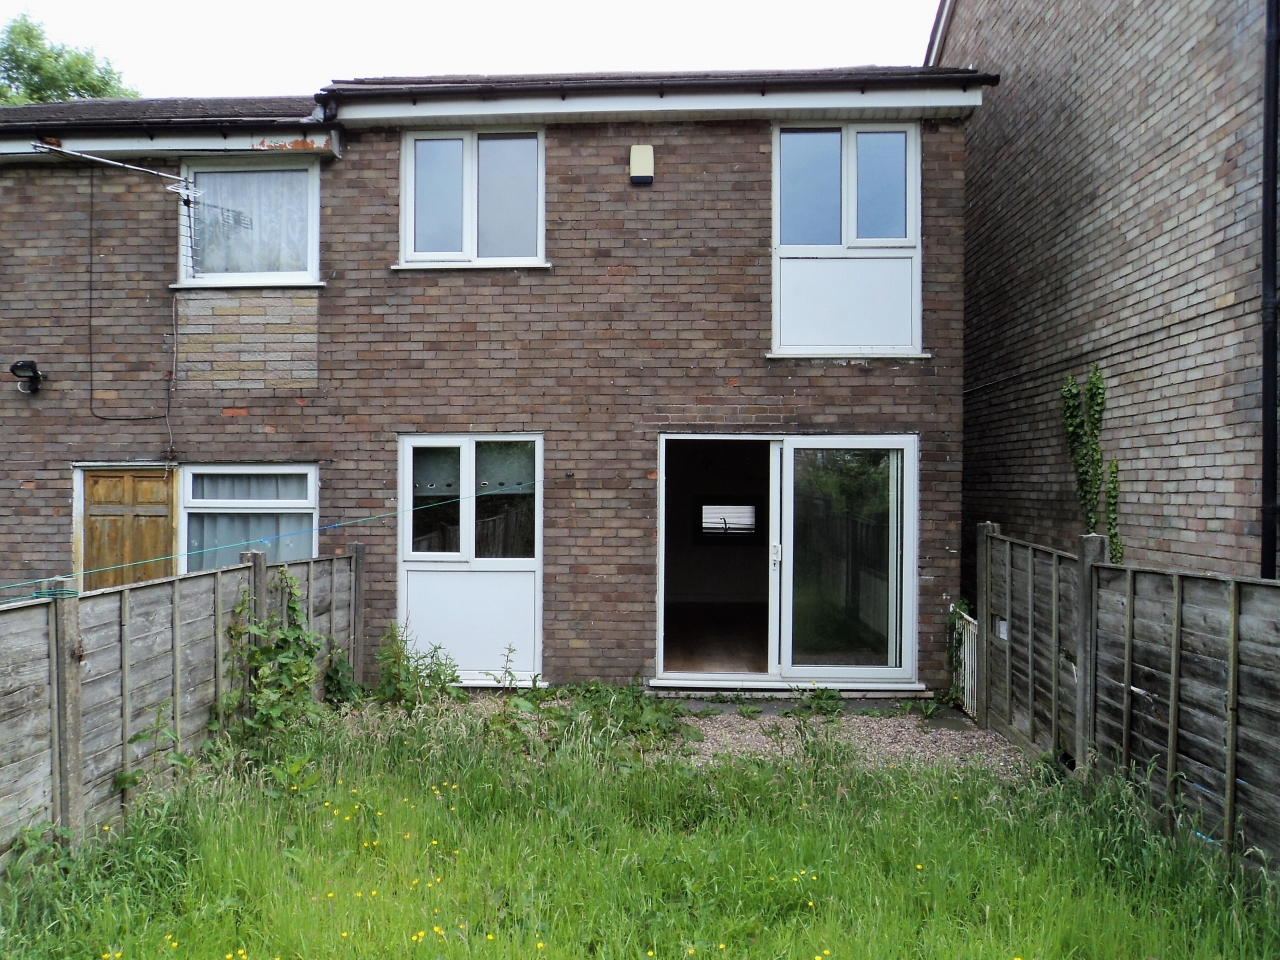 3 Bedroom End Terraced House For Sale - Image 7